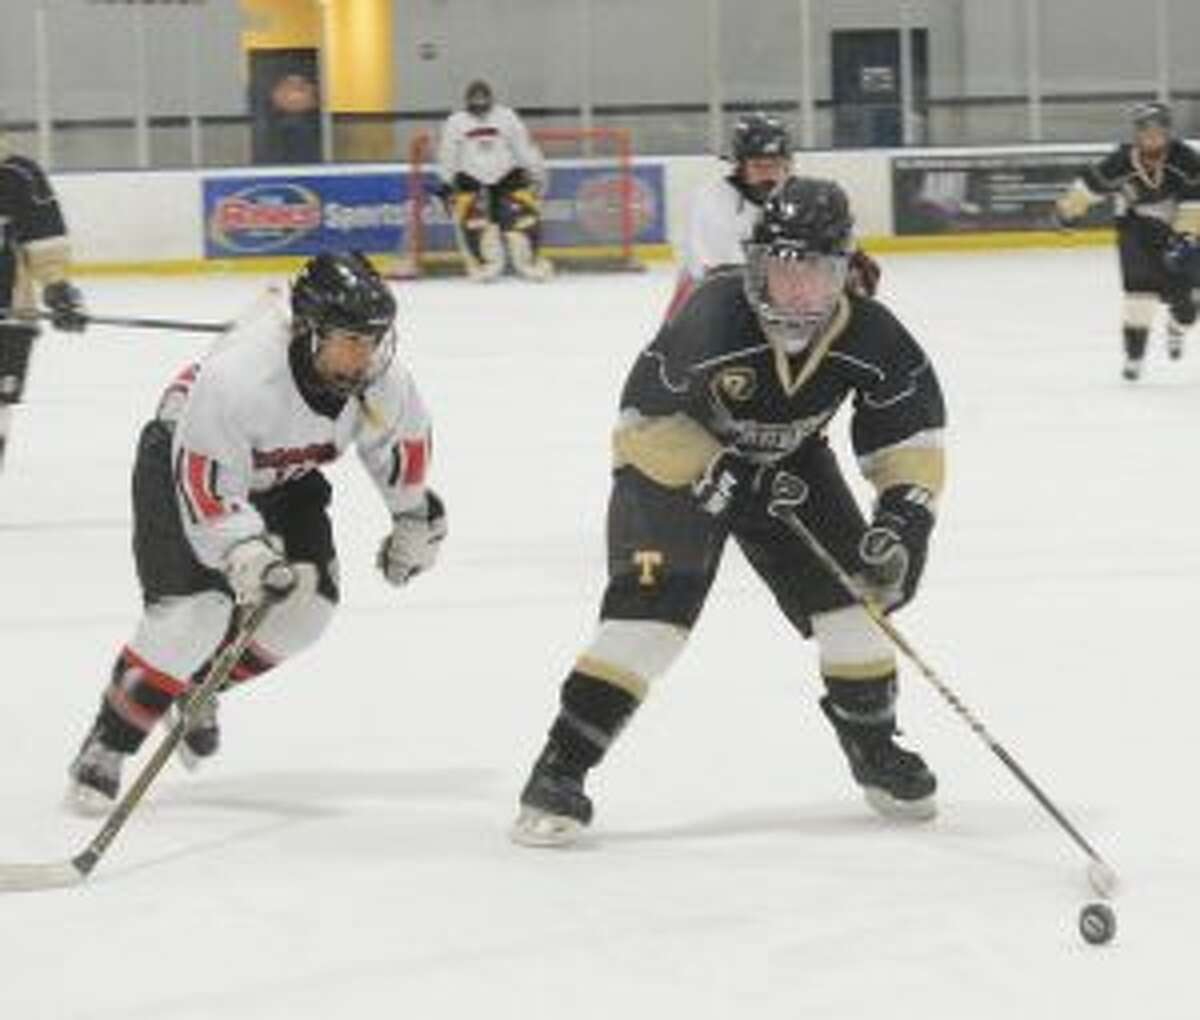 Erin Owens scored four goals for Trumbull-St. Joseph. - Andy Hutchison photo